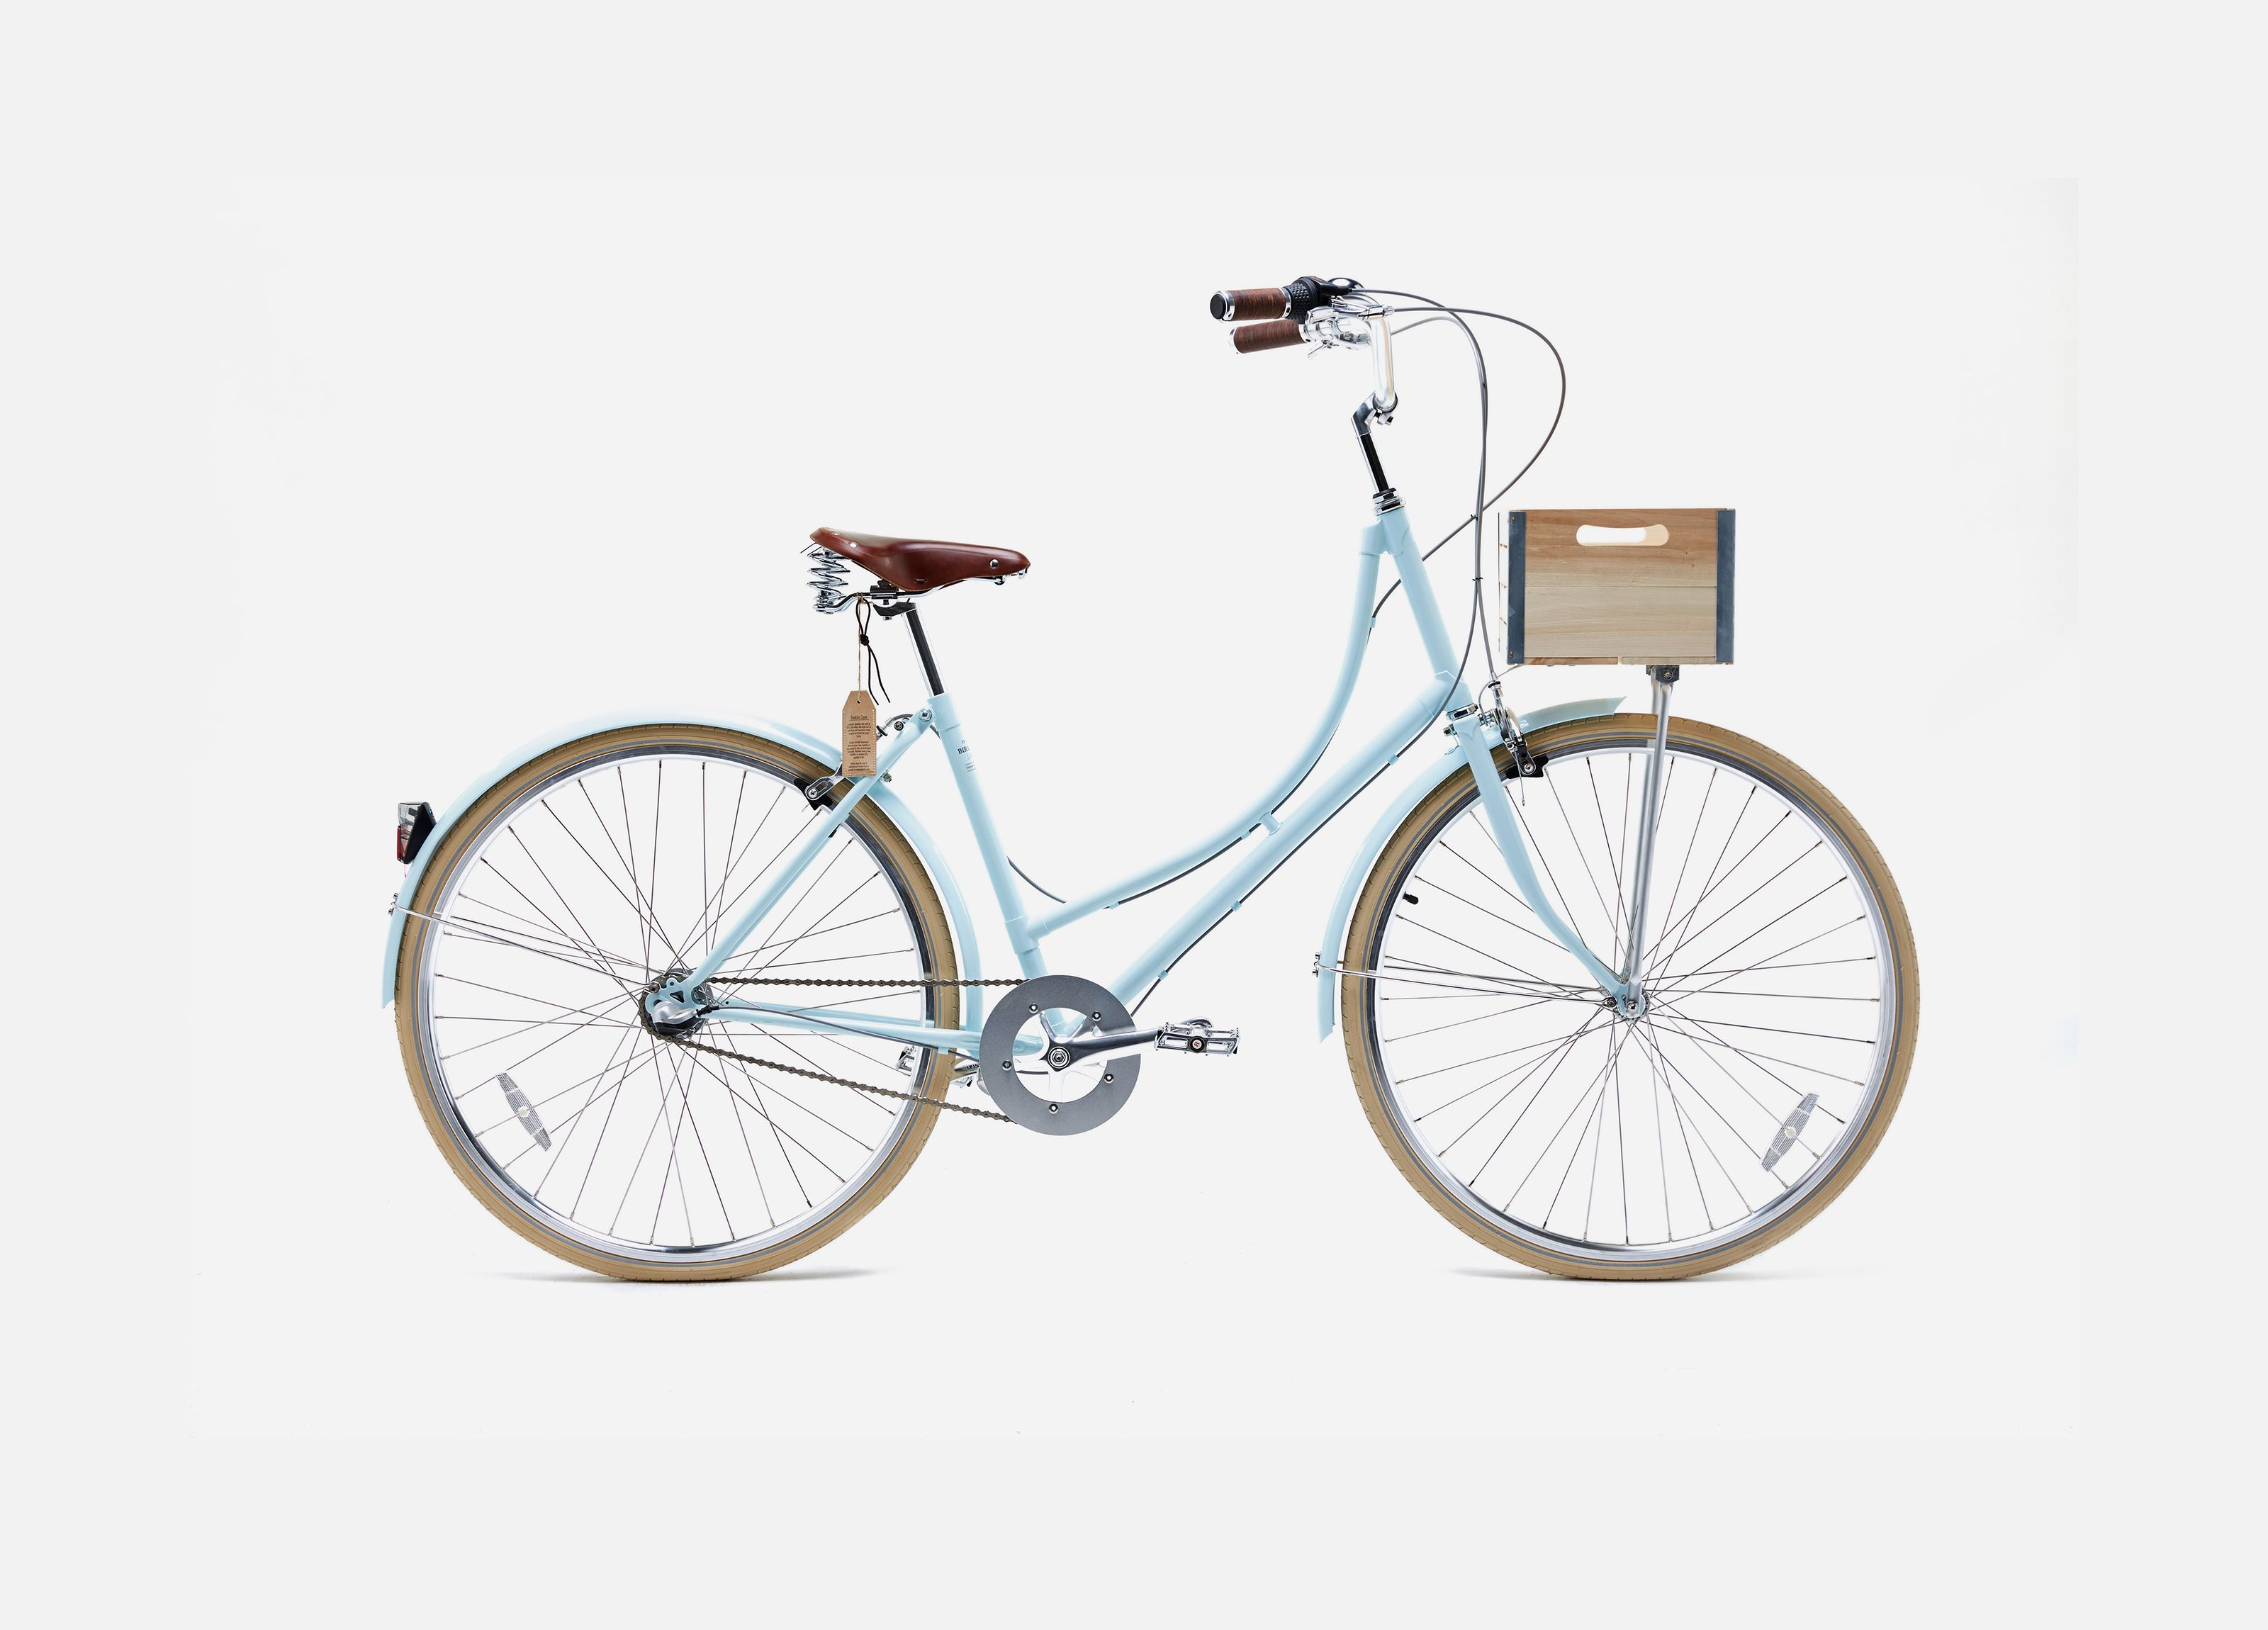 #Qualitative, #minimalistic #bikes by Australian-based company BIRICHINO BICYCLES.  More now on wonce.co - http://bit.ly/2ce5iHm.  #design #art #bicycles #modern #quality #simplicity #minimalism #creativity #inspiration #feature #wonceco #wonce #model #photography